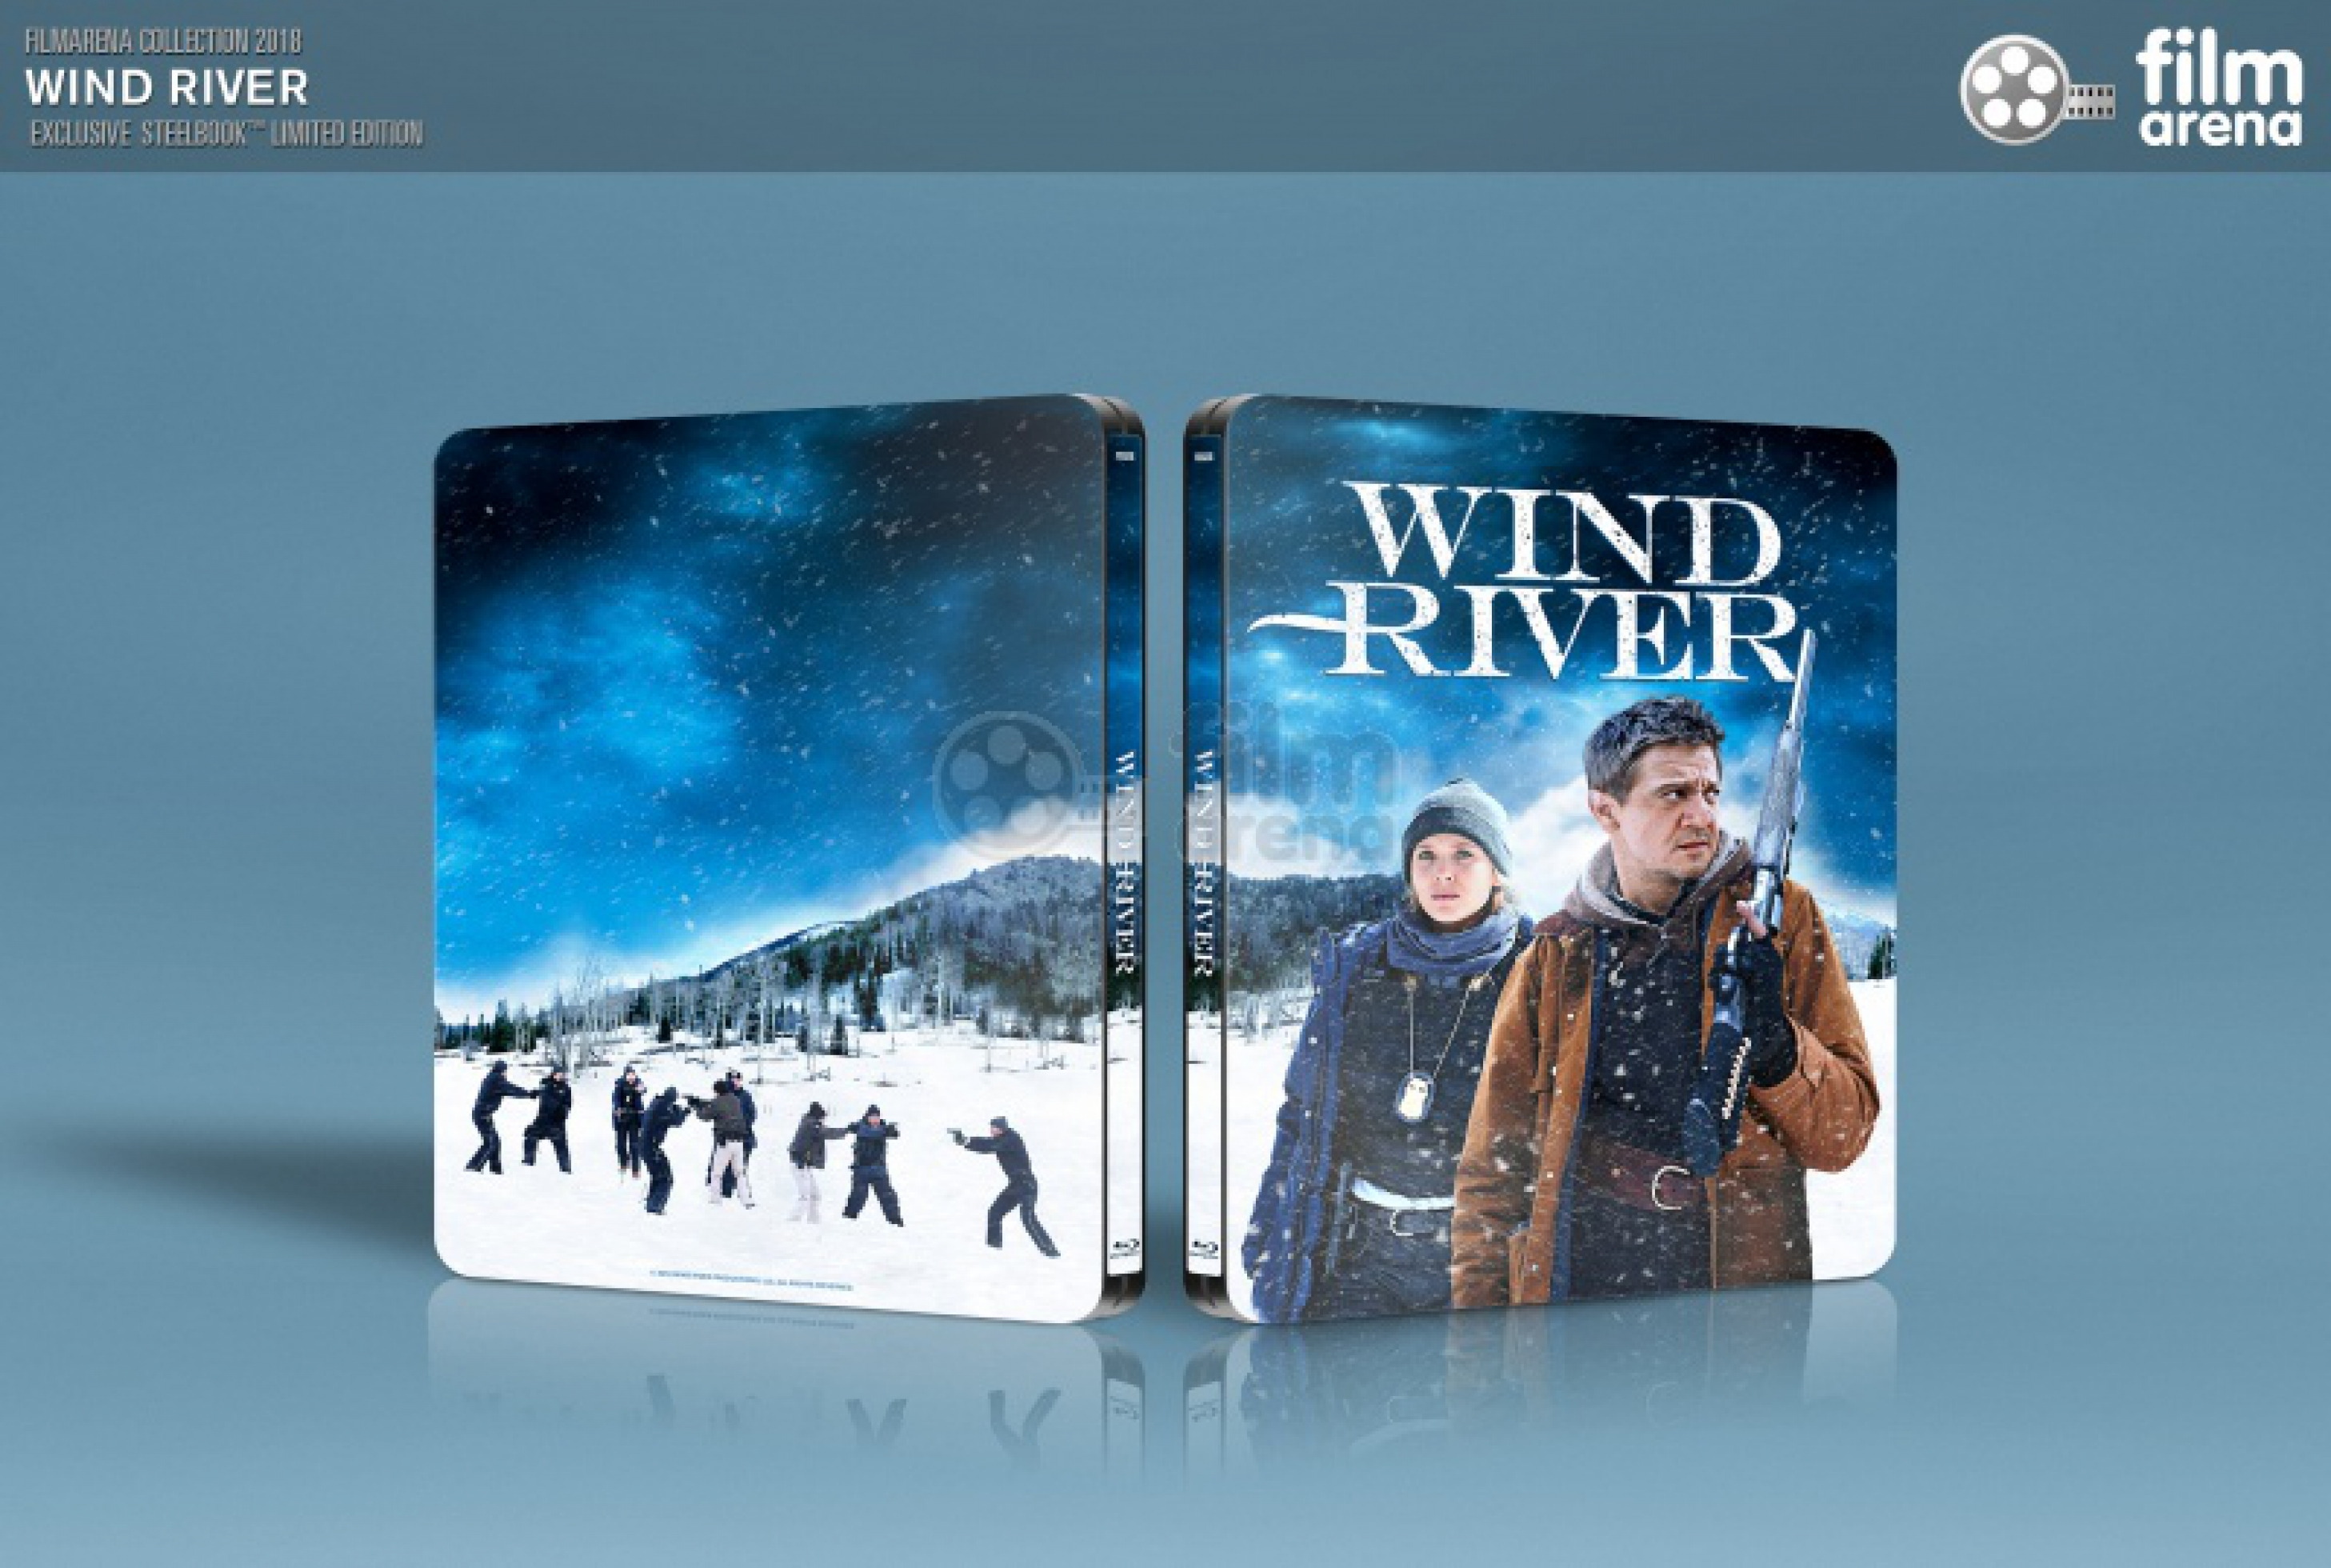 Wind River HD-Filmportal Edition 5 FAC unnumbered